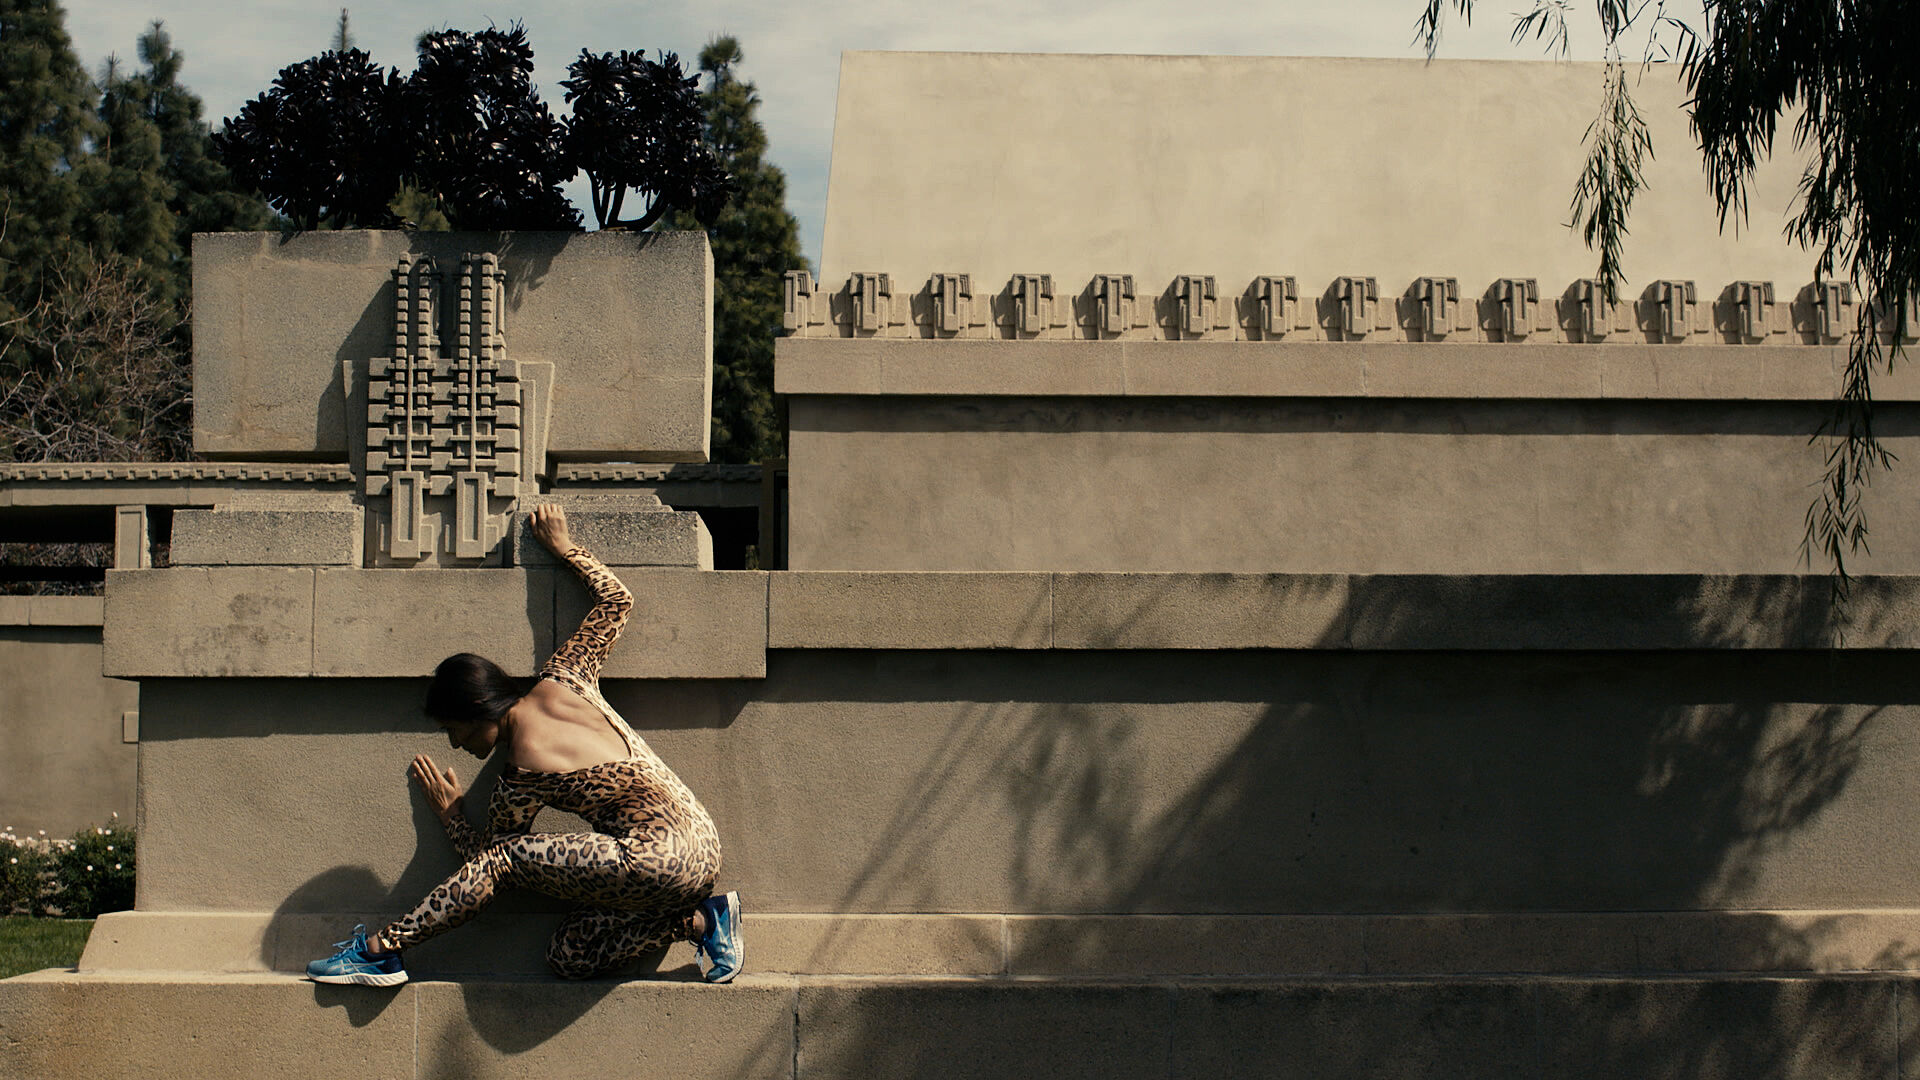 A woman in a leopard suit scaling a wall